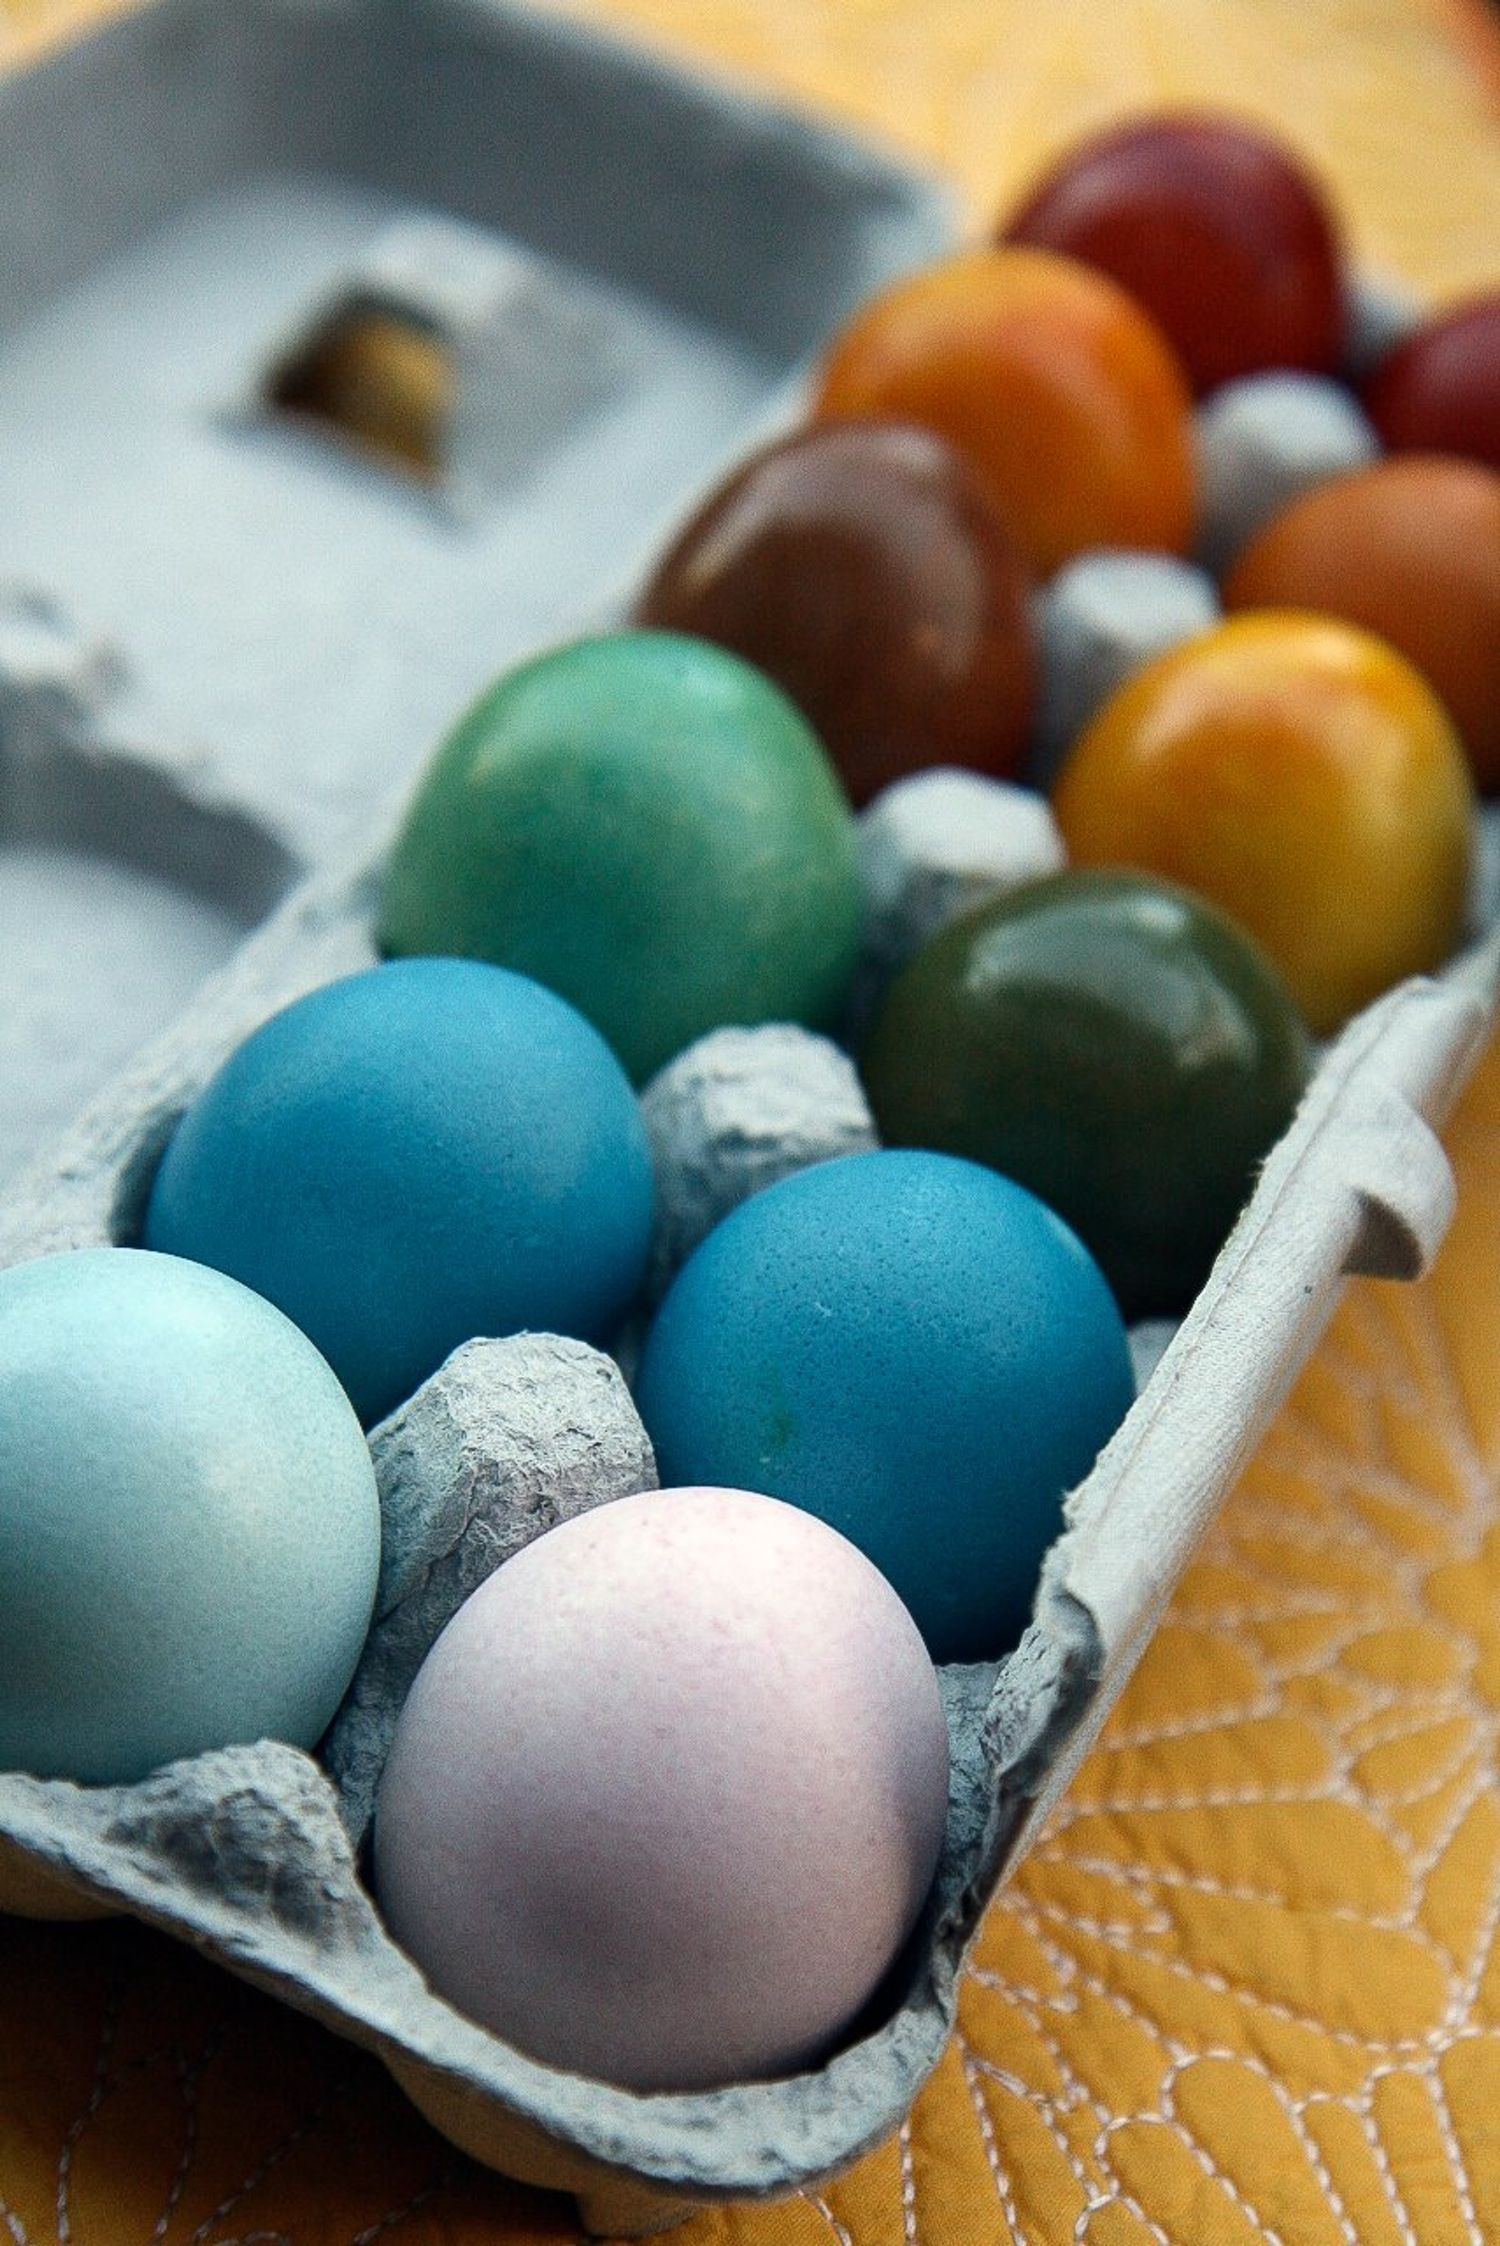 How To Make Vibrant, Naturally Dyed Easter Eggs — Holiday Projects from The Kitchn